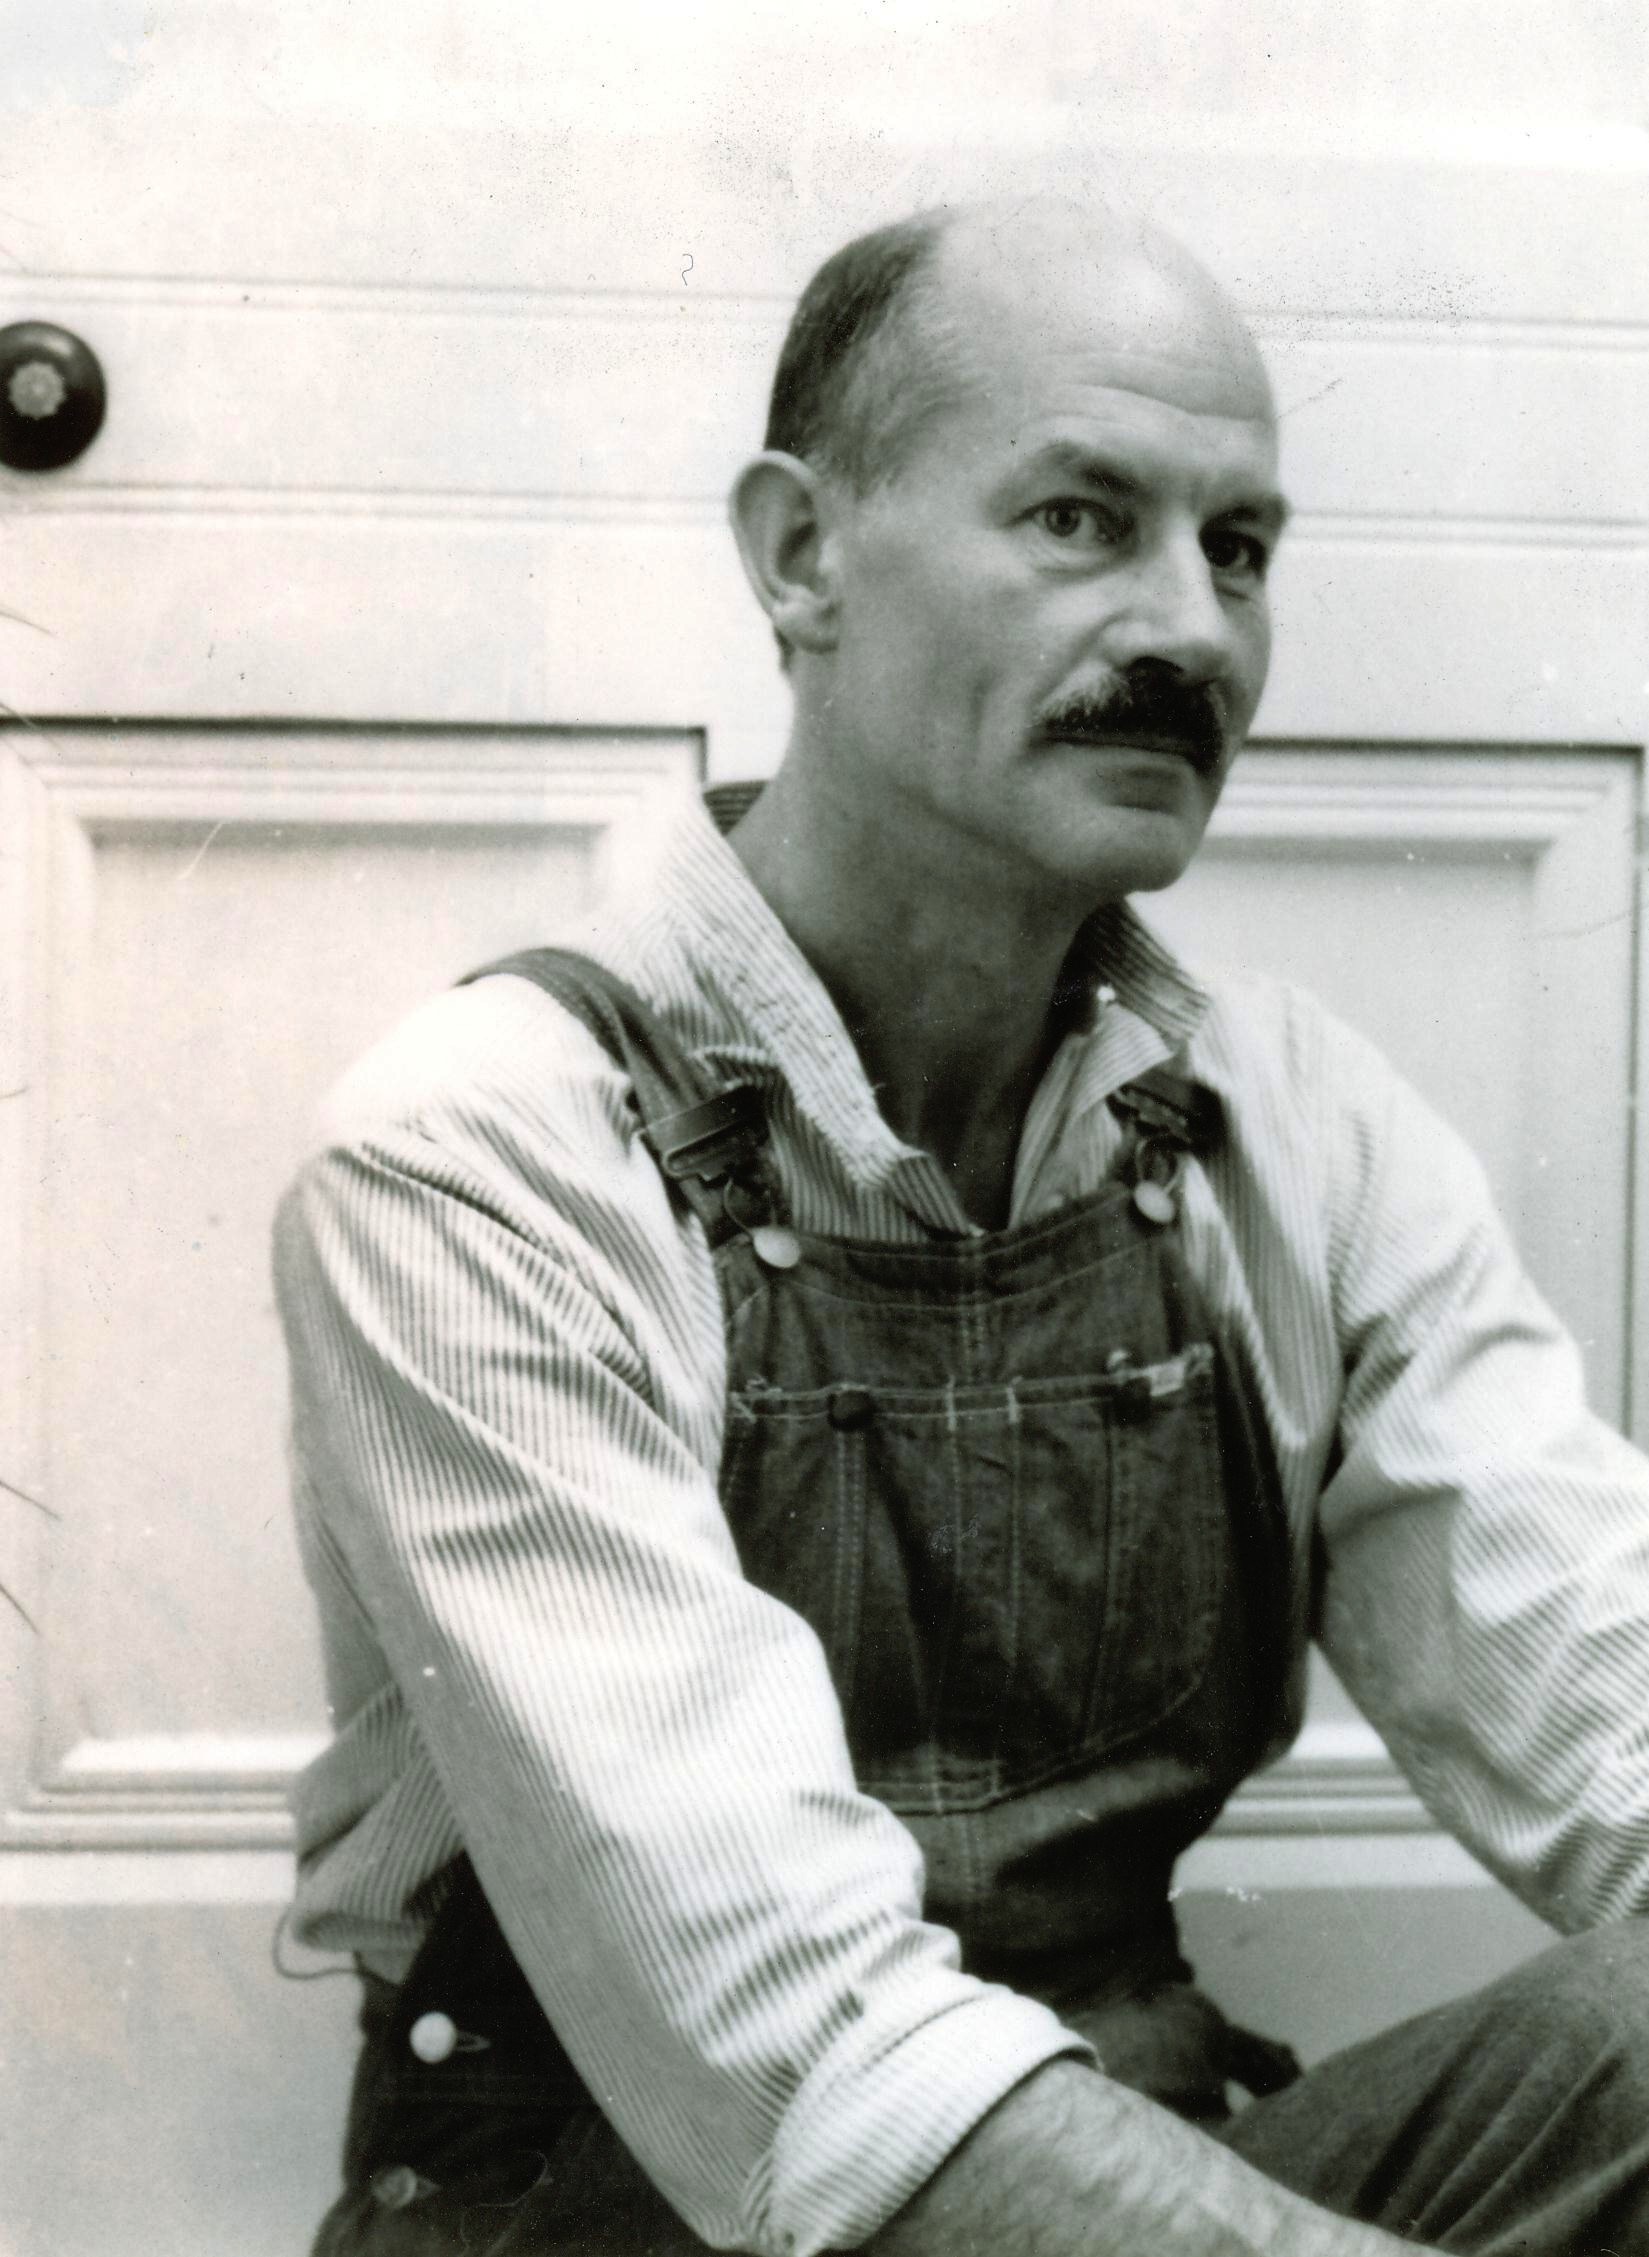 Barry Smith (1930-1989). Photo courtesy of Collection: The National Puppetry Archive